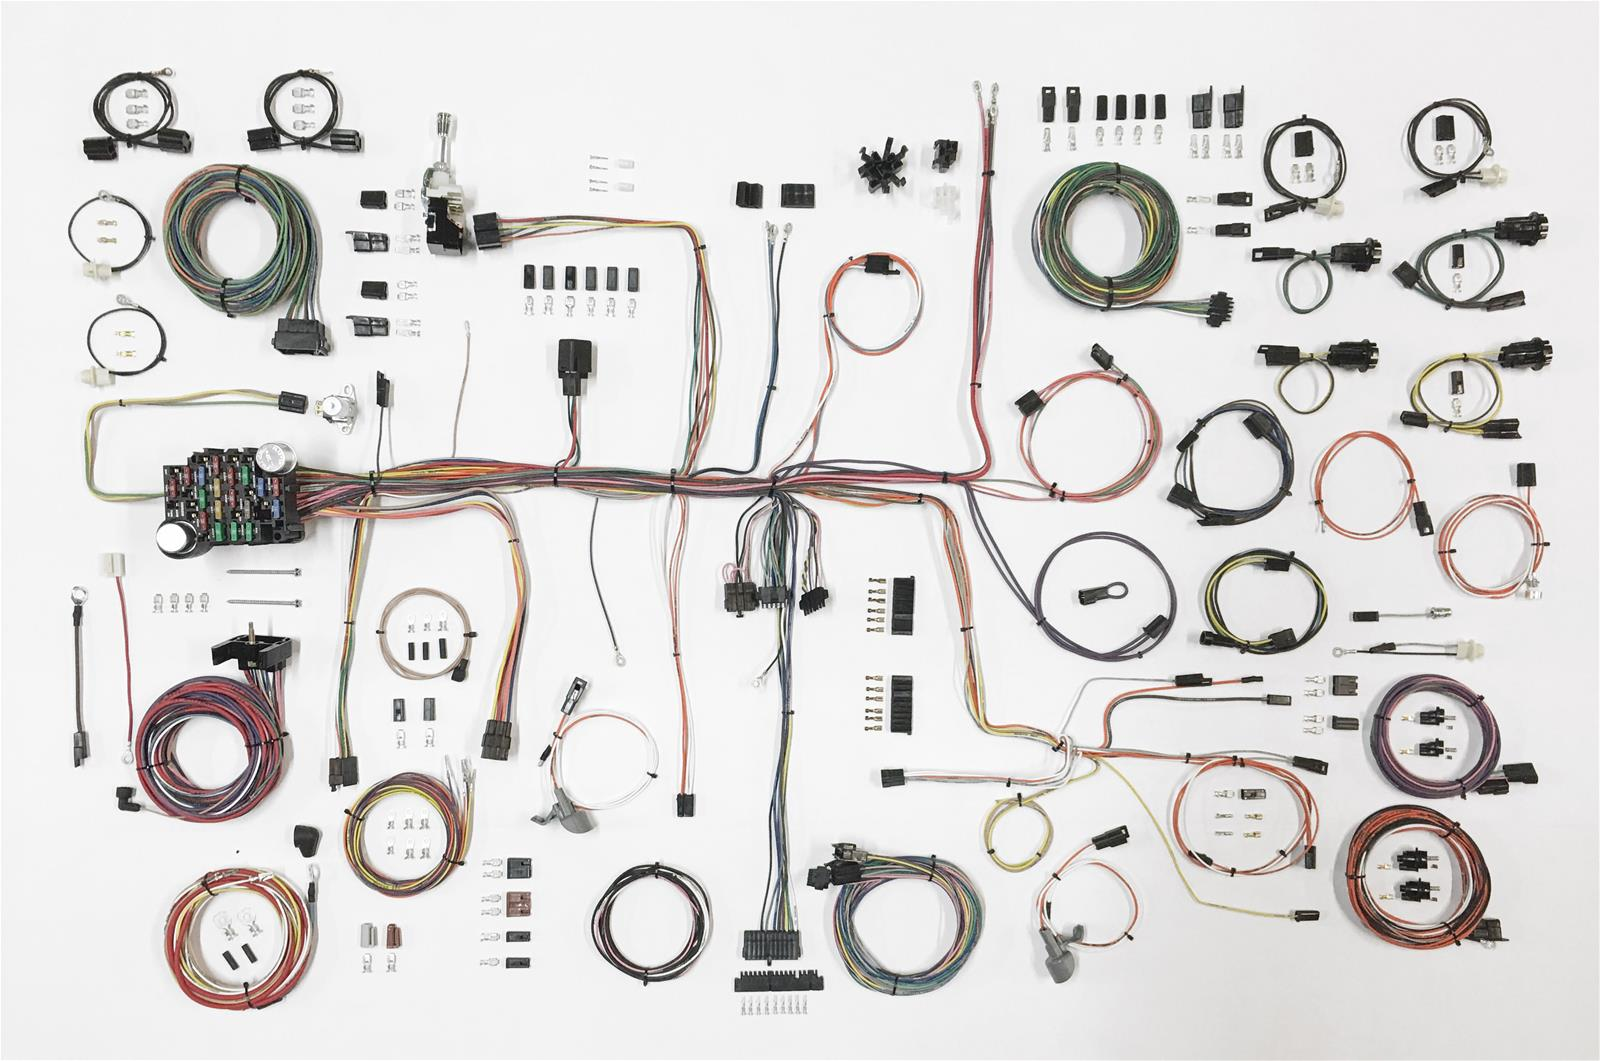 1971 Oldsmobile 442 Wiring Harness | Wiring Diagram on